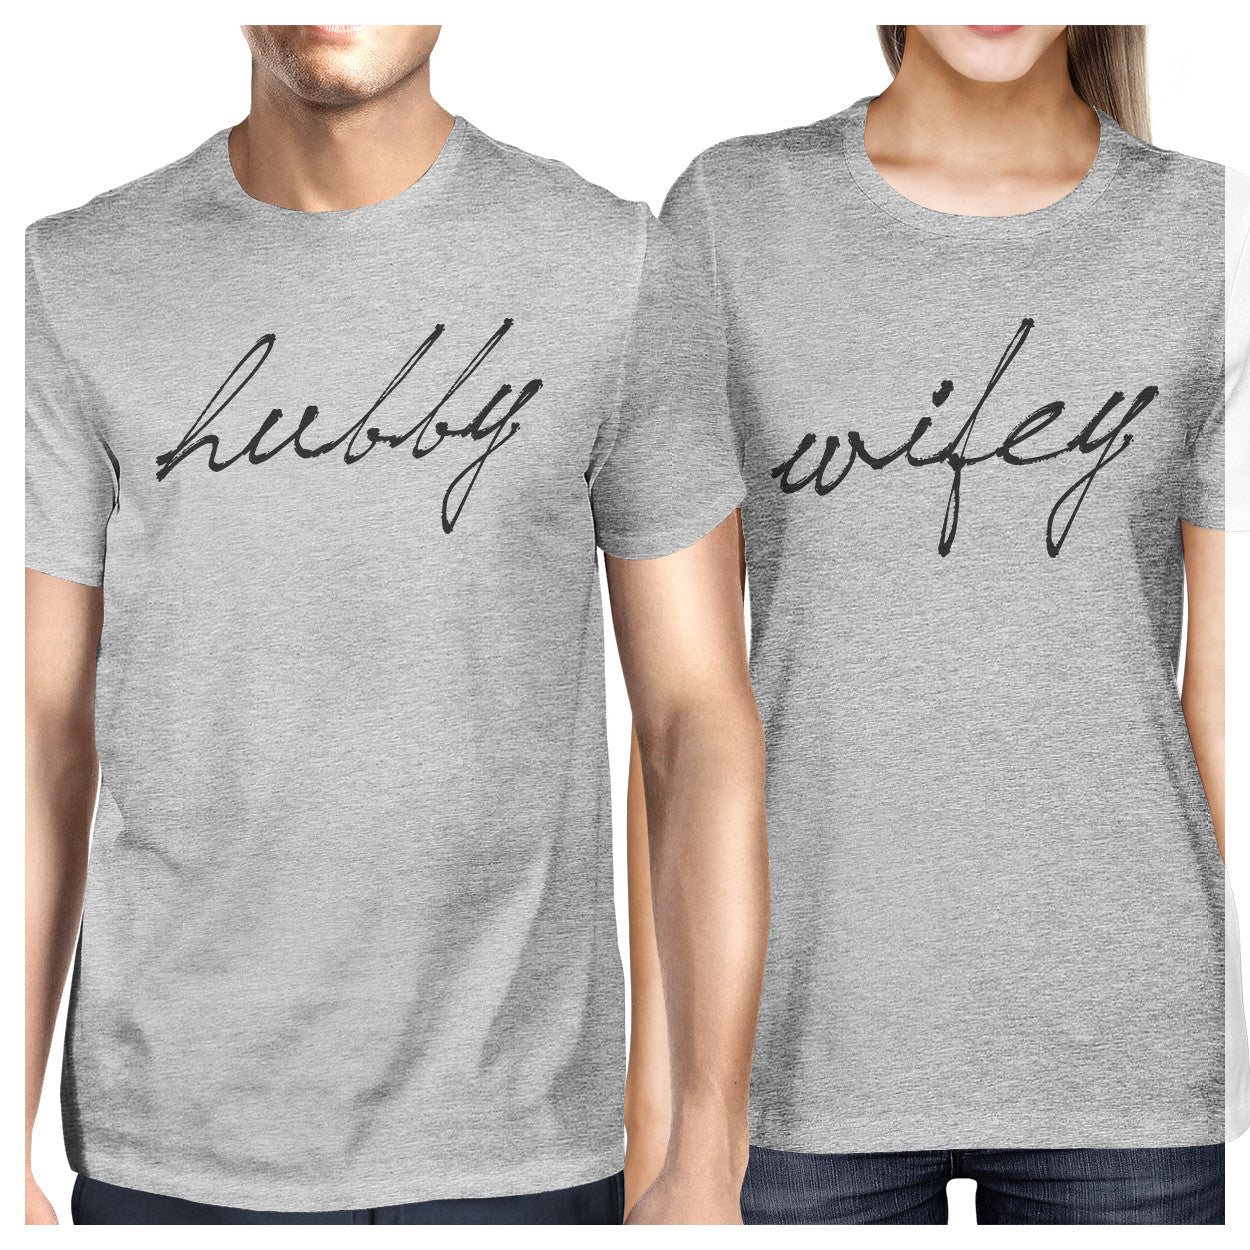 b8ed93a5d0 Hubby & Wifey Matching Couple Shirts - 365 IN LOVE - Matching Gifts ...